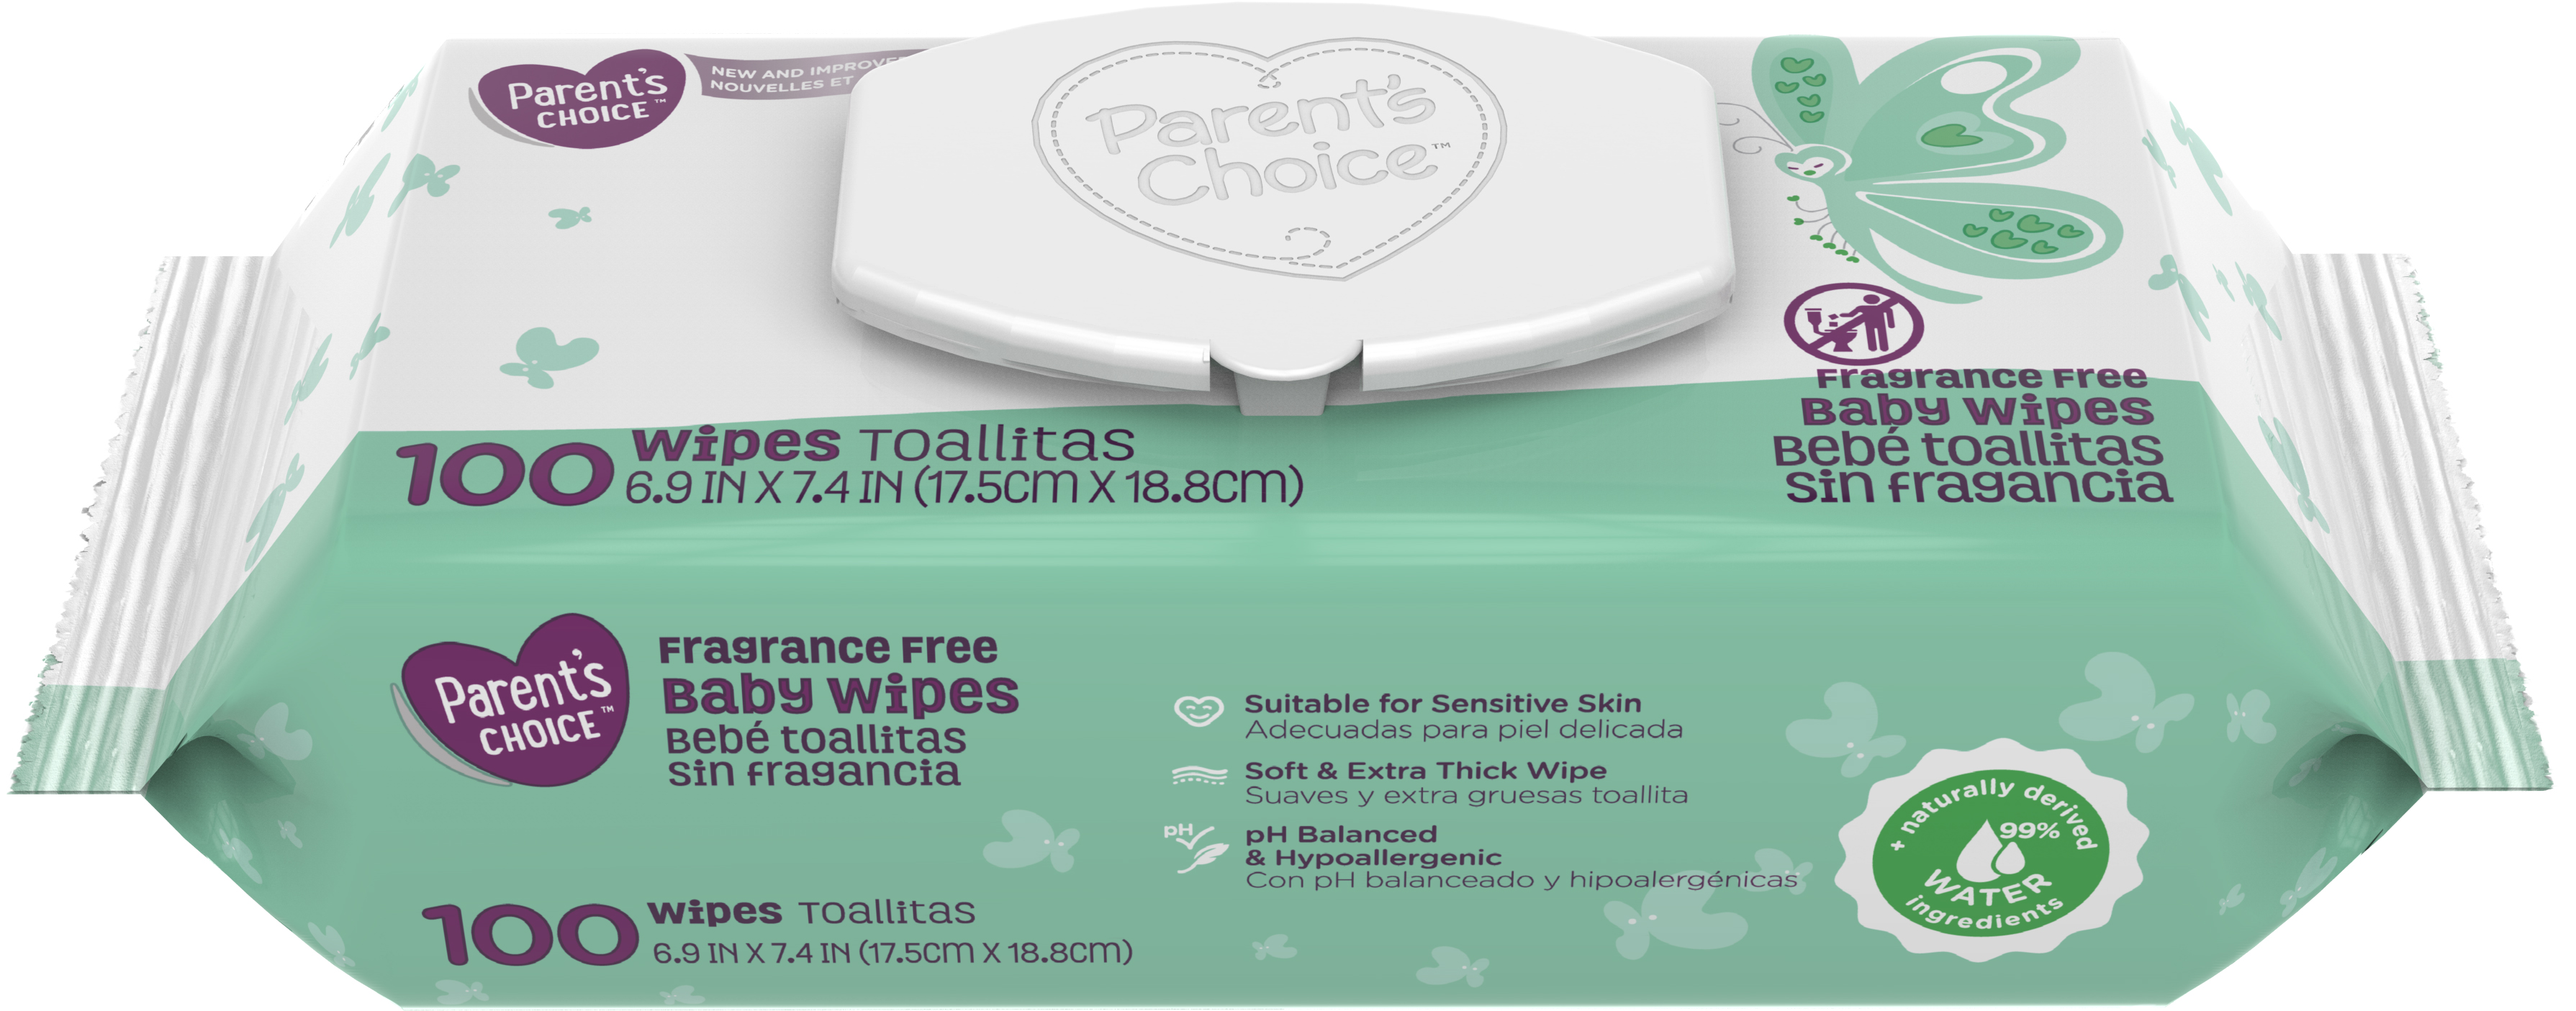 Parent/'s Choice Sensitive with Soothing Aloe Baby Wipes *Free 2 day ship